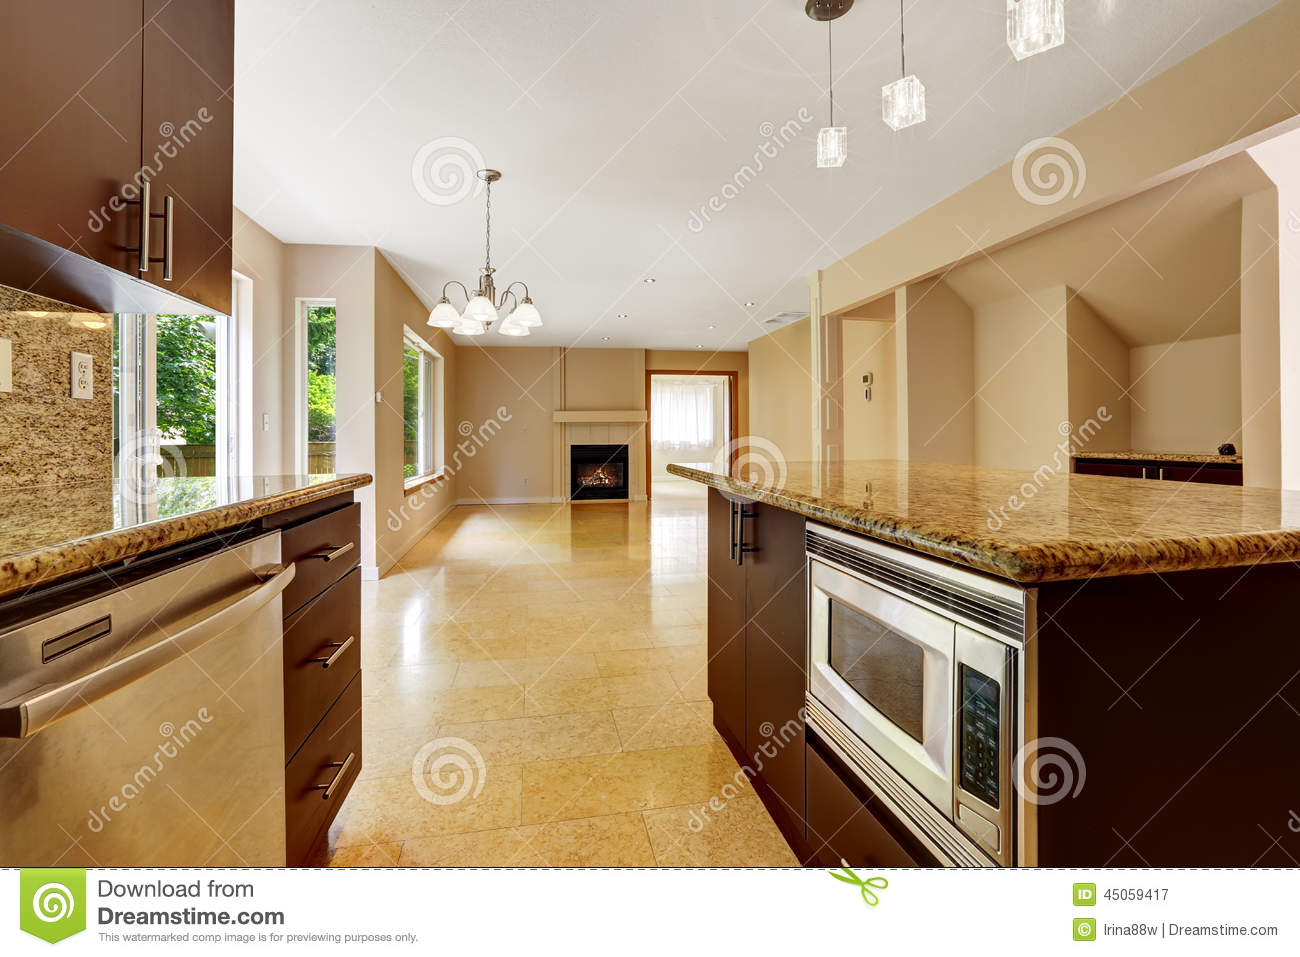 Marble Tile Kitchen Floor Empty House Interior With Kitchen Area Marble Tile Floor Stock